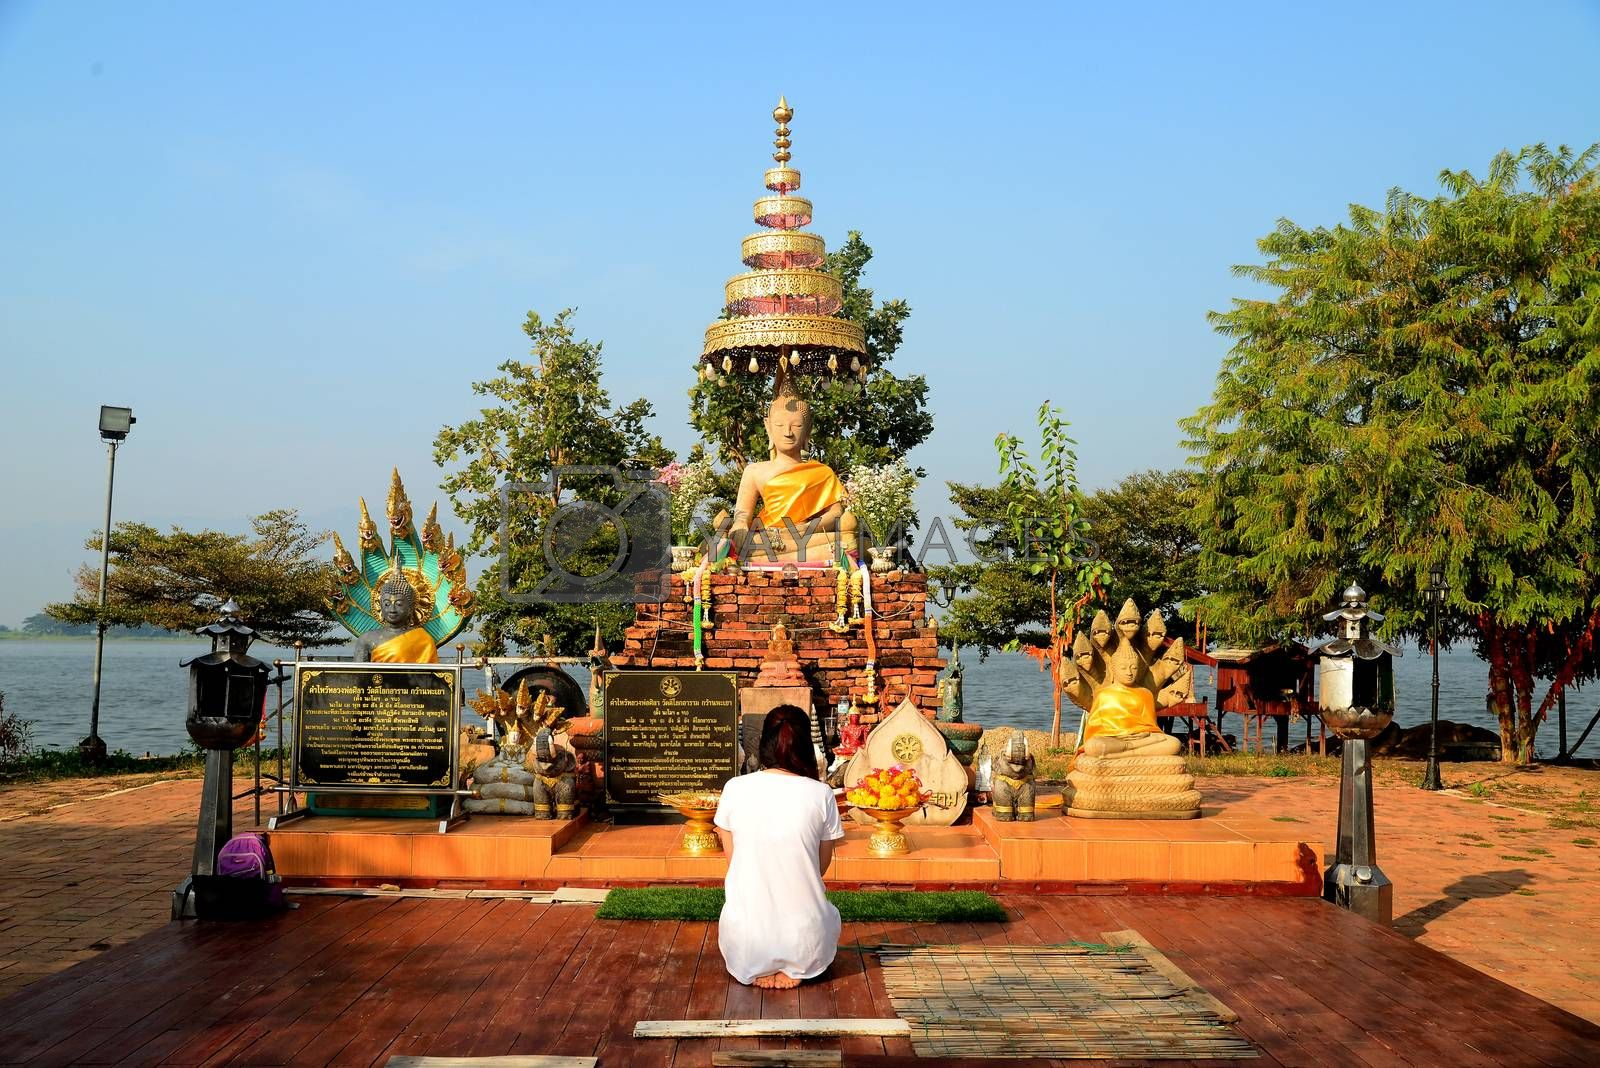 Phayao, Thailand – 21 December, 2019 : Wat Tilok Aram : Year-Old Underwater Temple of Thailand, Today a floating platform with the statue of a Buddha sits directly above the site of the sunken temple.